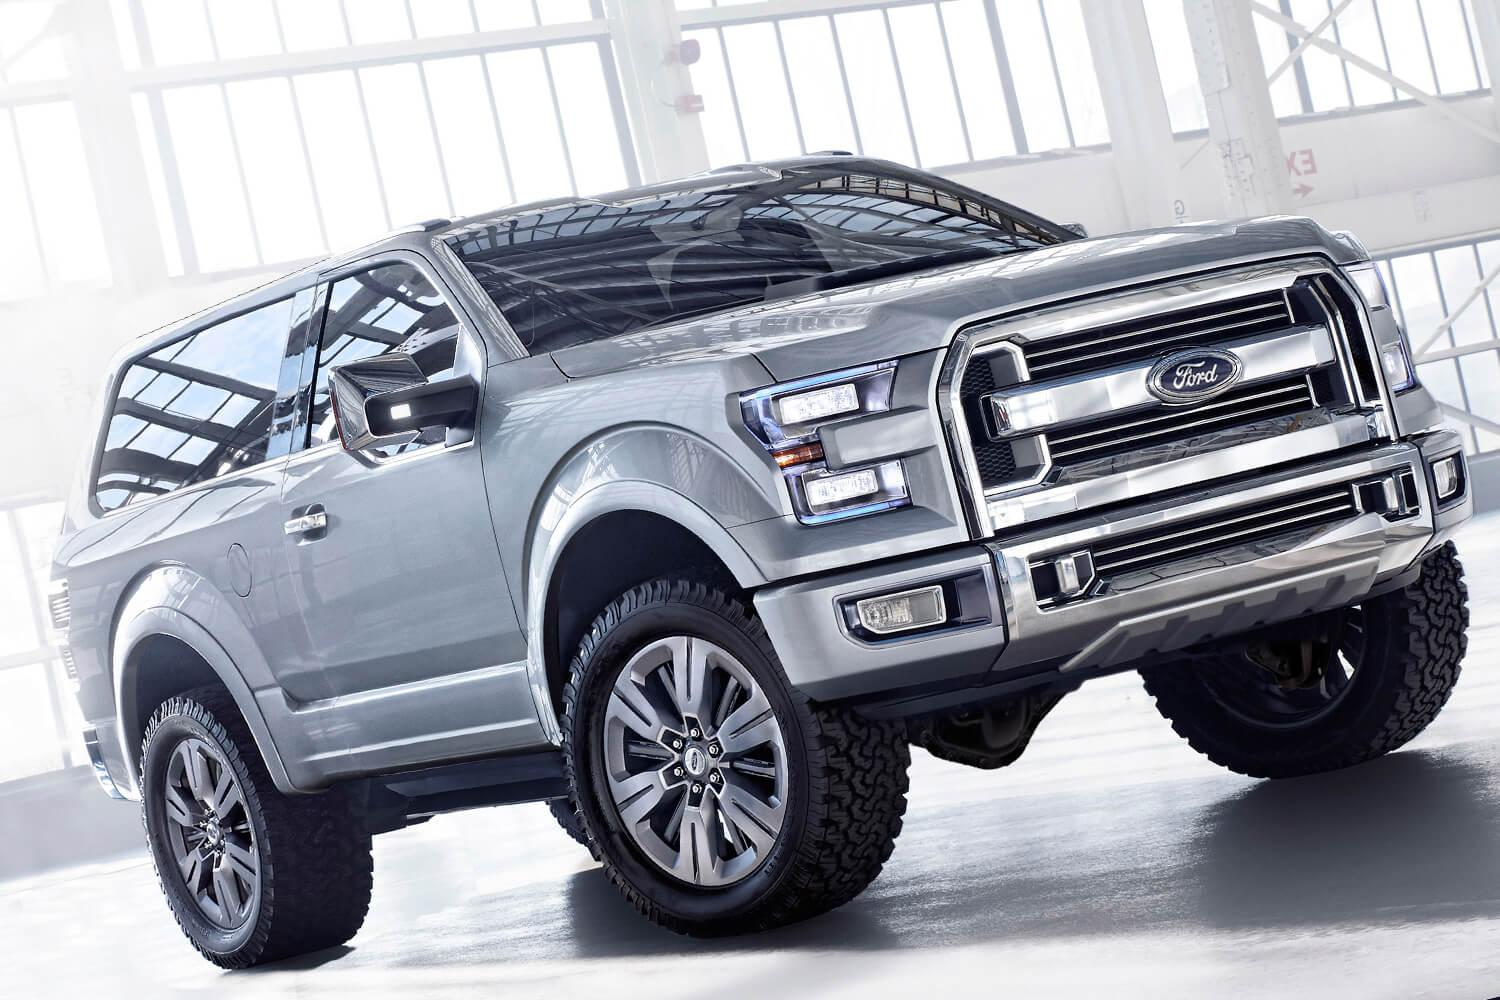 Ford: 2018 Ford Bronco Wallpapers - 2018 Ford Bronco 4 Door, Release ...